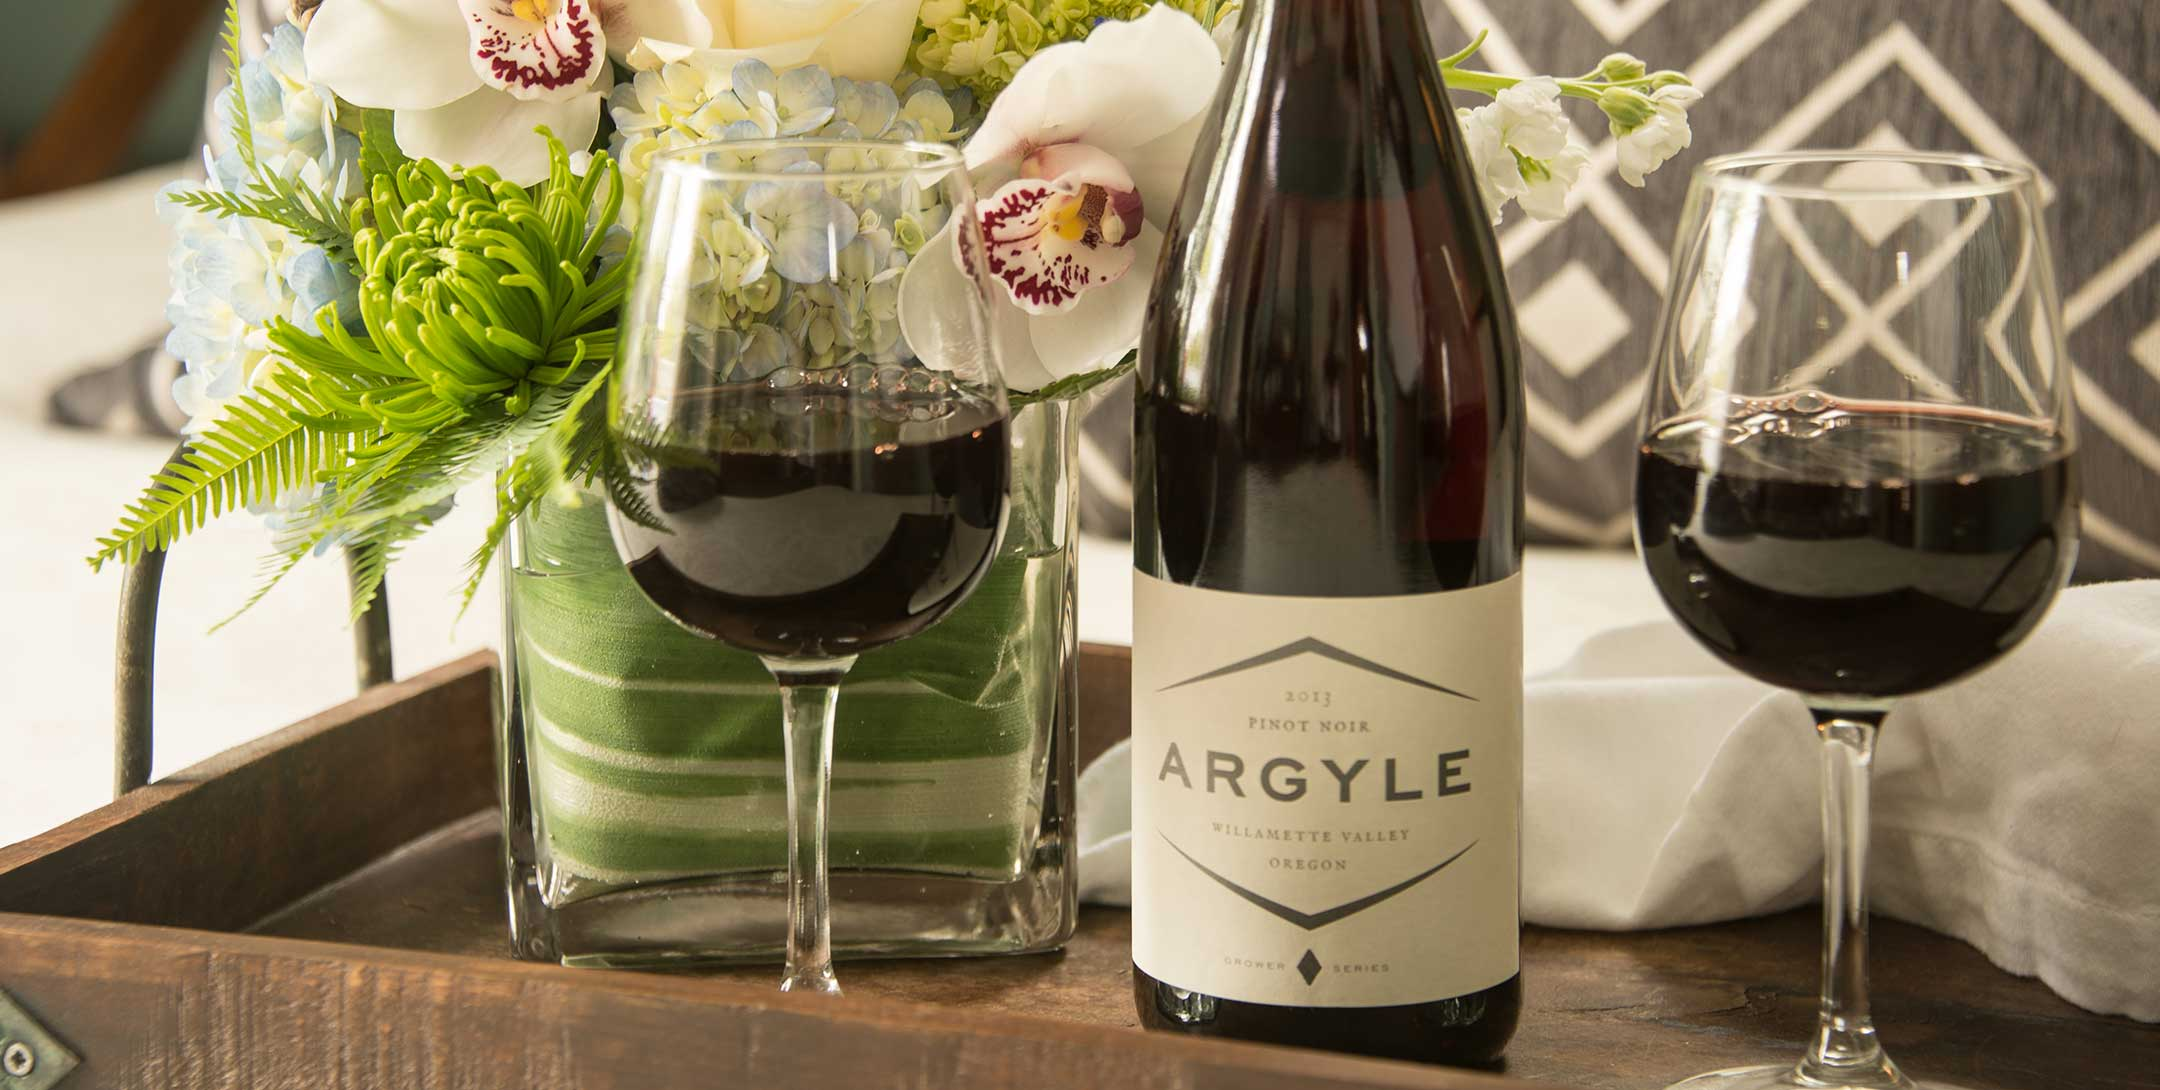 Argyle Pinot Noir wine and flowers